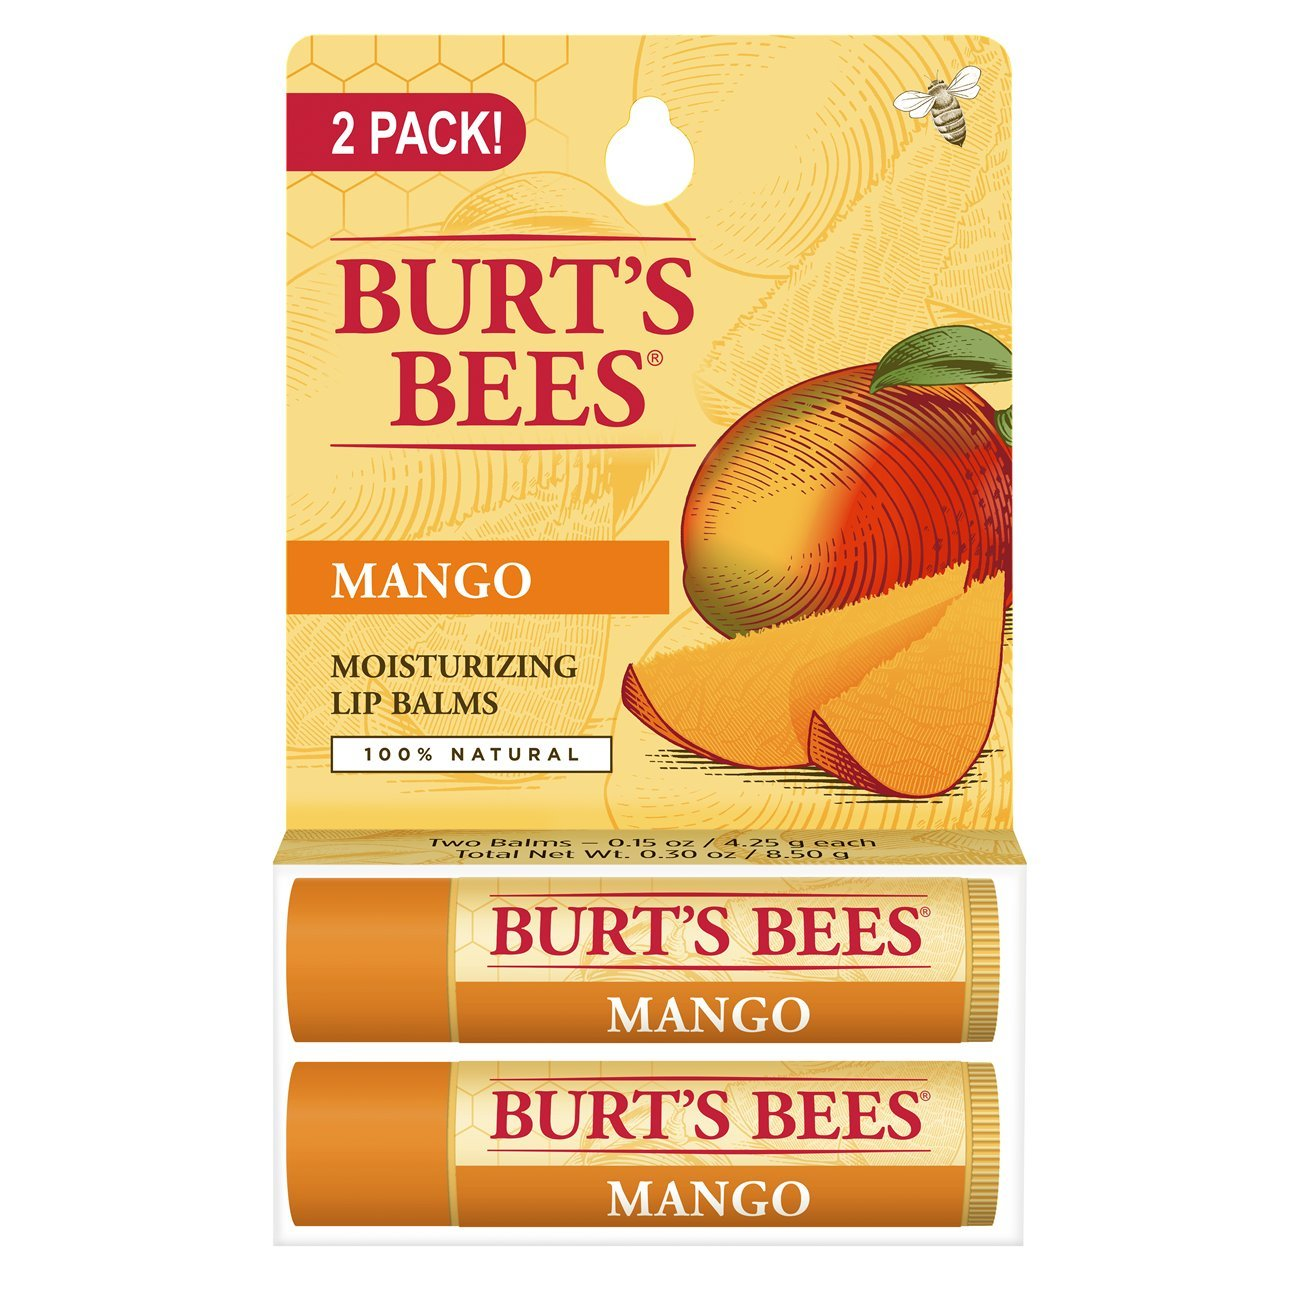 Burt's Bees 100% Natural Moisturizing Lip Balm, Mango with Beeswax & Fruit Extracts - 2 Tubes